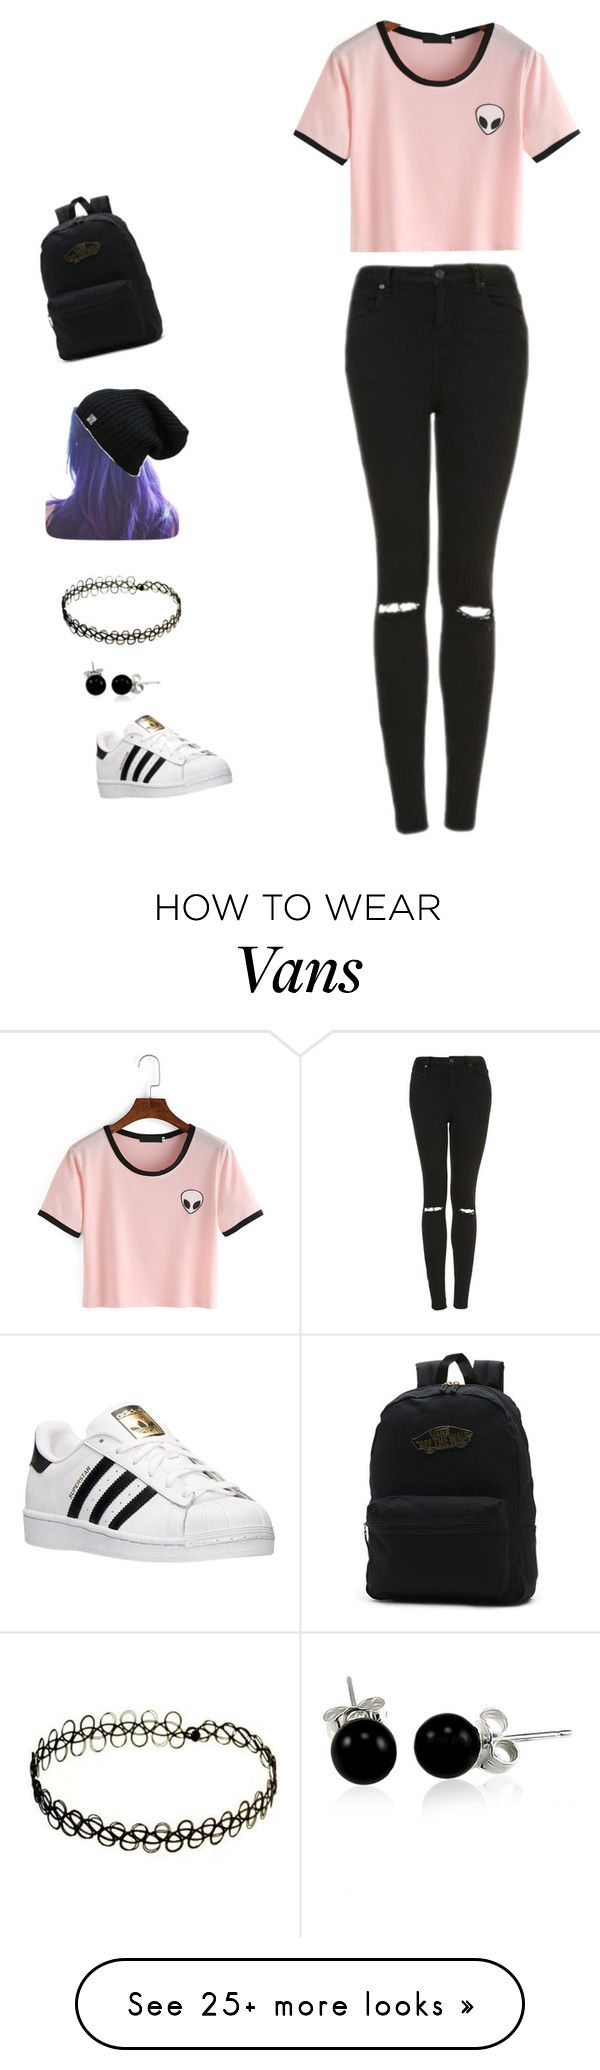 """""""GRuNGE"""" by cassidynh88 on Polyvore featuring Topshop, adidas, Vans and Bling Jewelry"""